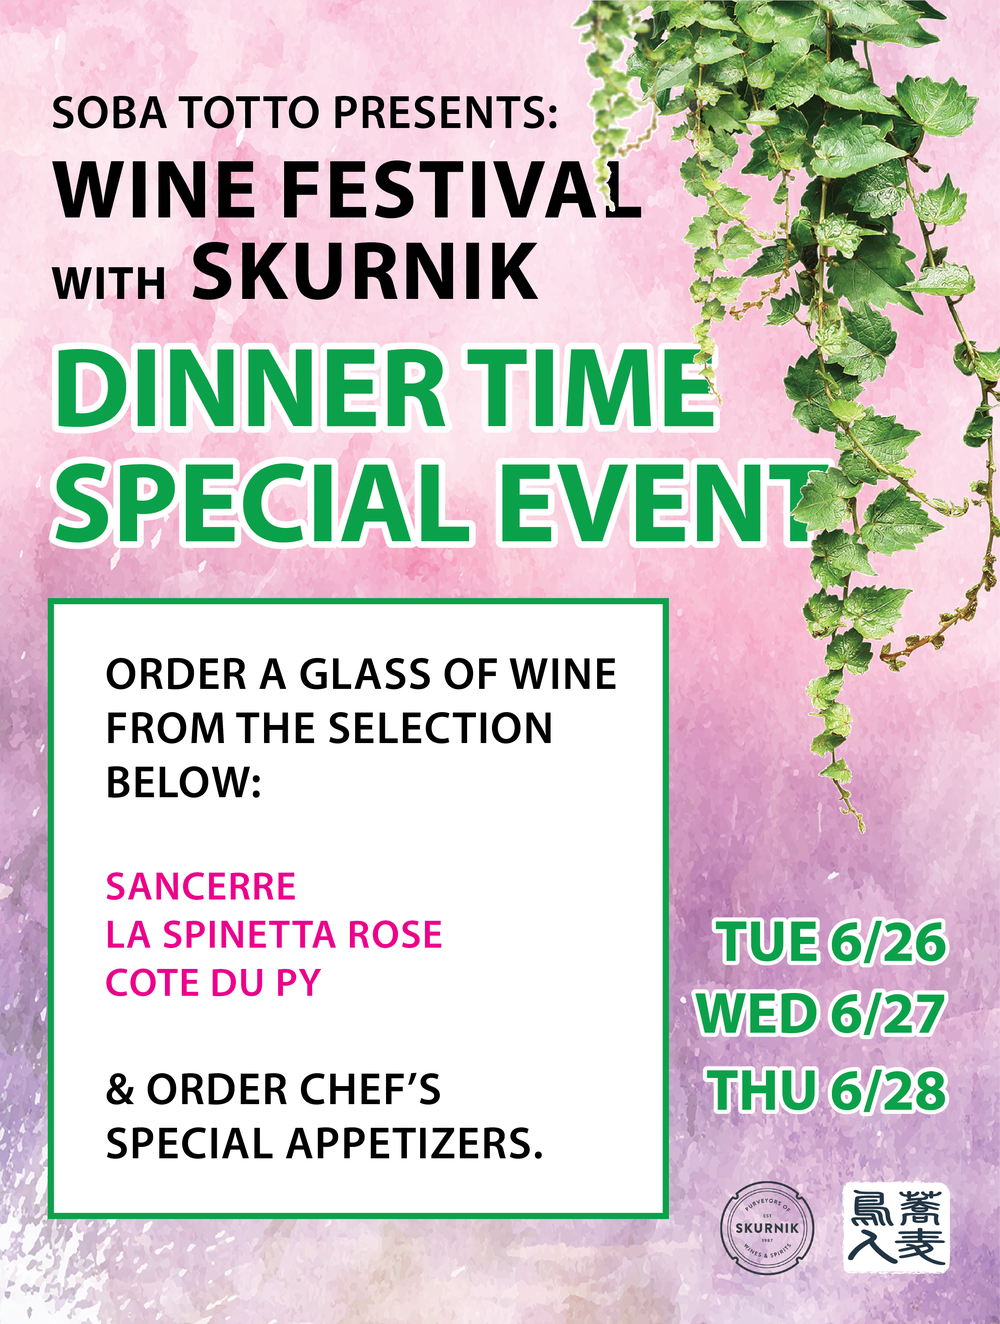 June 2018 Wine event w Skurnik Flyer.png